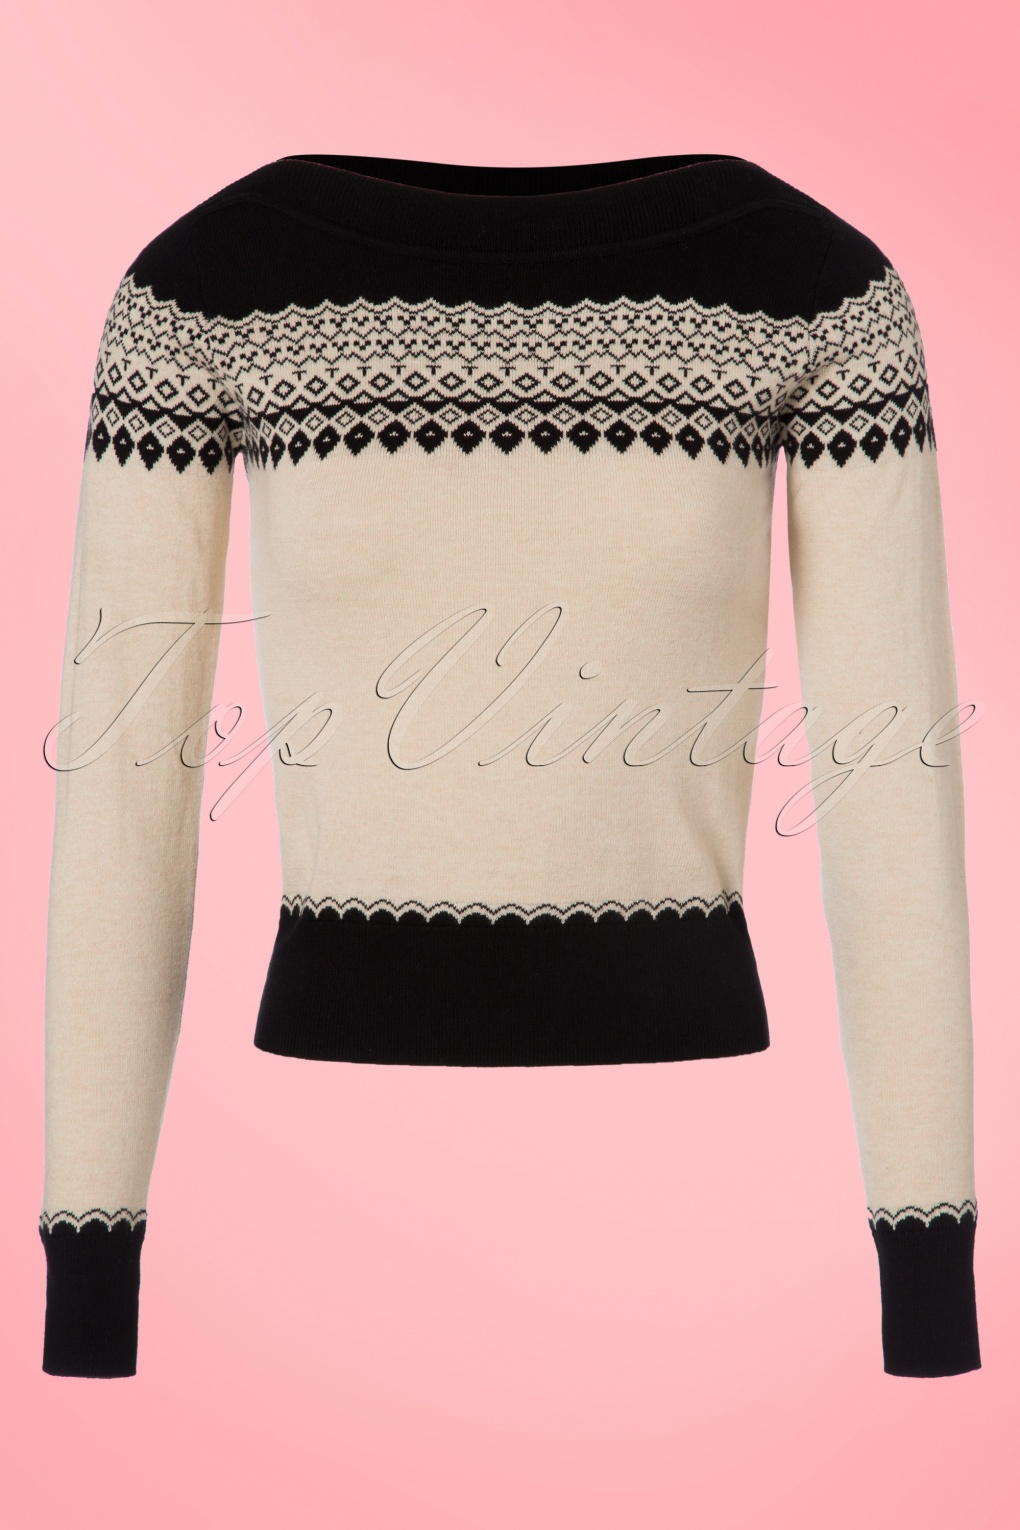 1950s Style Sweaters, Crop Cardigans, Twin Sets 50s Audrey Parker Top in Black and Cream £72.50 AT vintagedancer.com